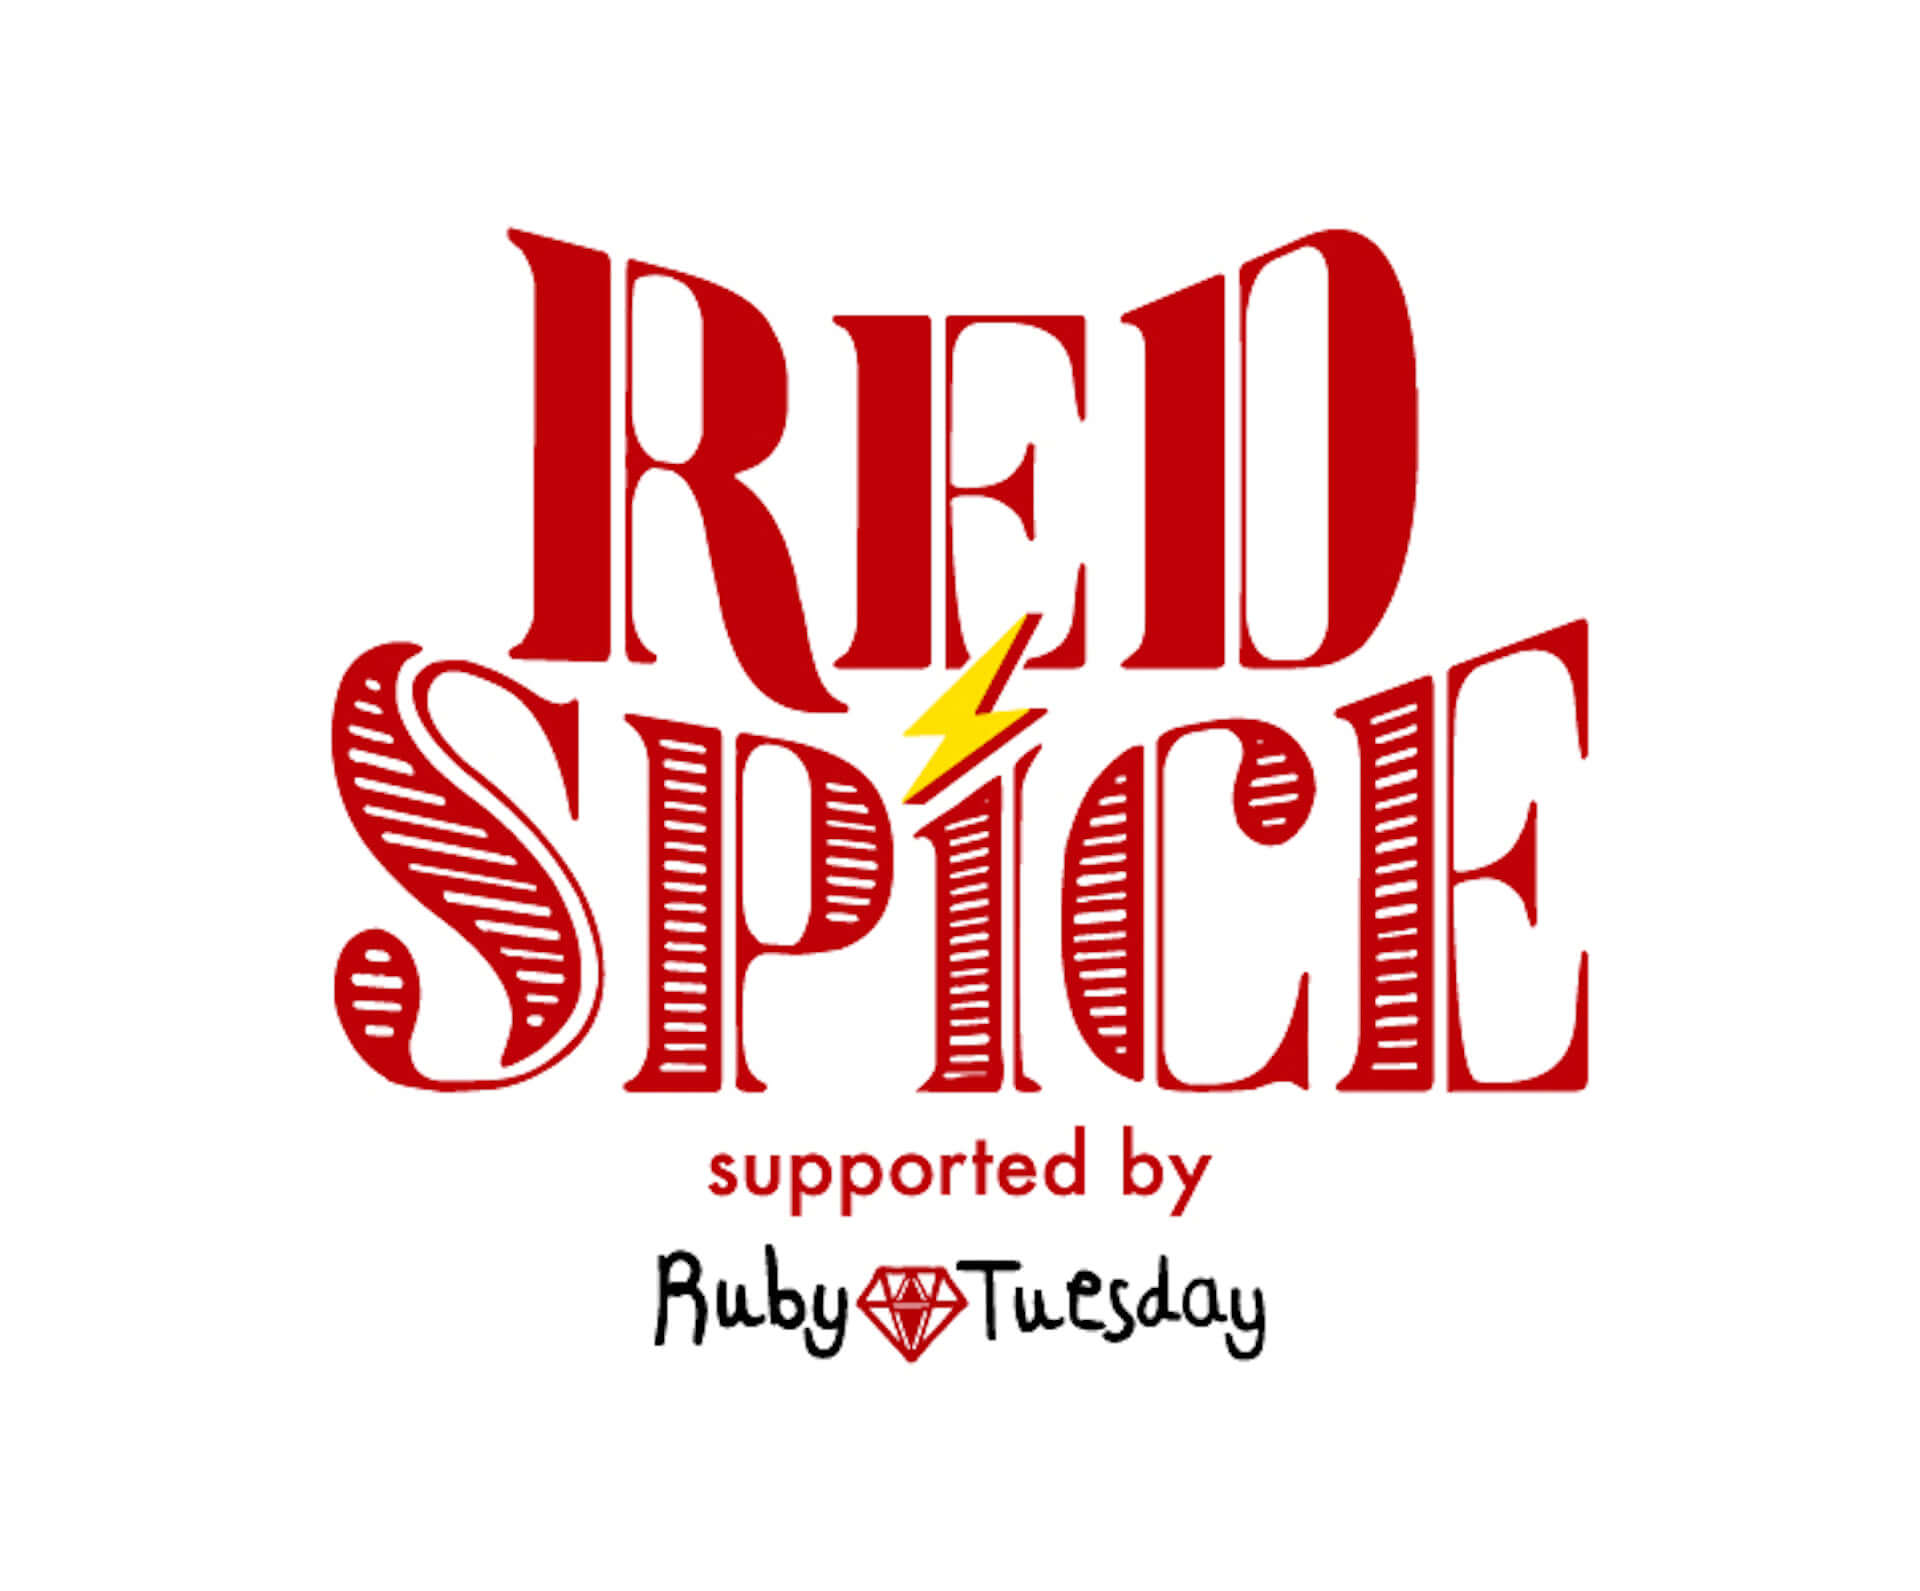 HOT STUFF PROMOTIONが新イベント<RED SPICE>&<of BLUE>を始動!never young beach、サニーデイ・サービス、羊文学らが出演 music201102_redspice-ofblue_4-1920x1591